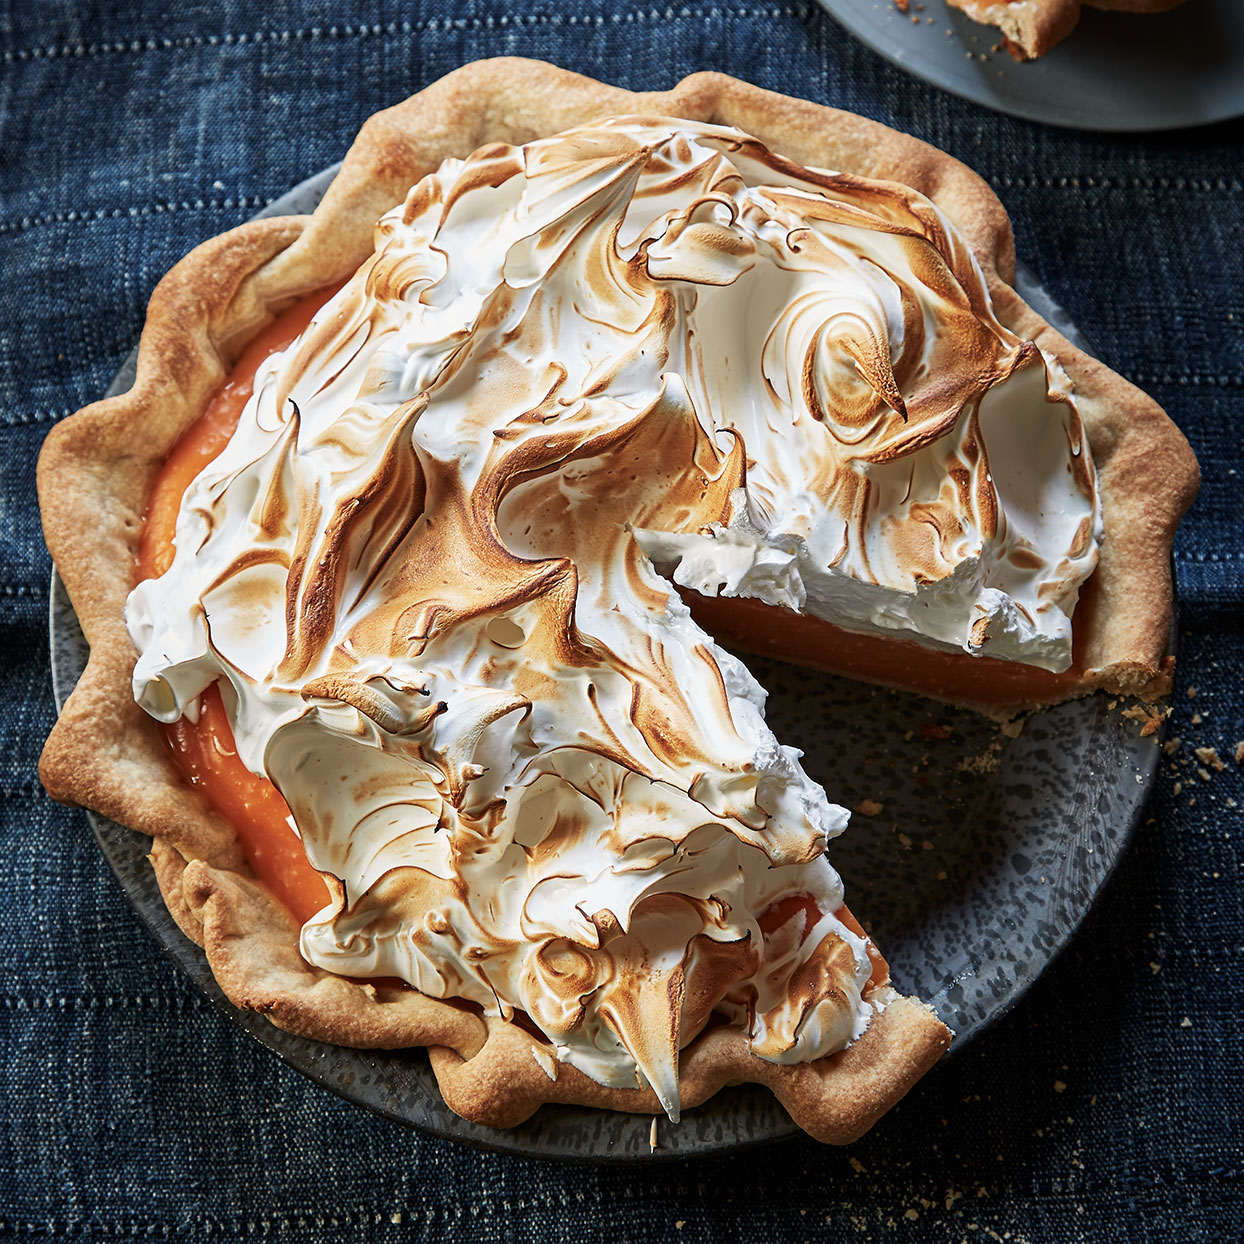 The Italian meringue topping on this stunning pie is made by beating hot sugar syrup into egg whites that are already beaten to stiff peaks. It's a bit more effort, but the meringue holds its shape longer. For the pie's filling, we call for fresh squeezed grapefruit juice, but store-bought (not frozen) works well and may even give you more brightly colored results.